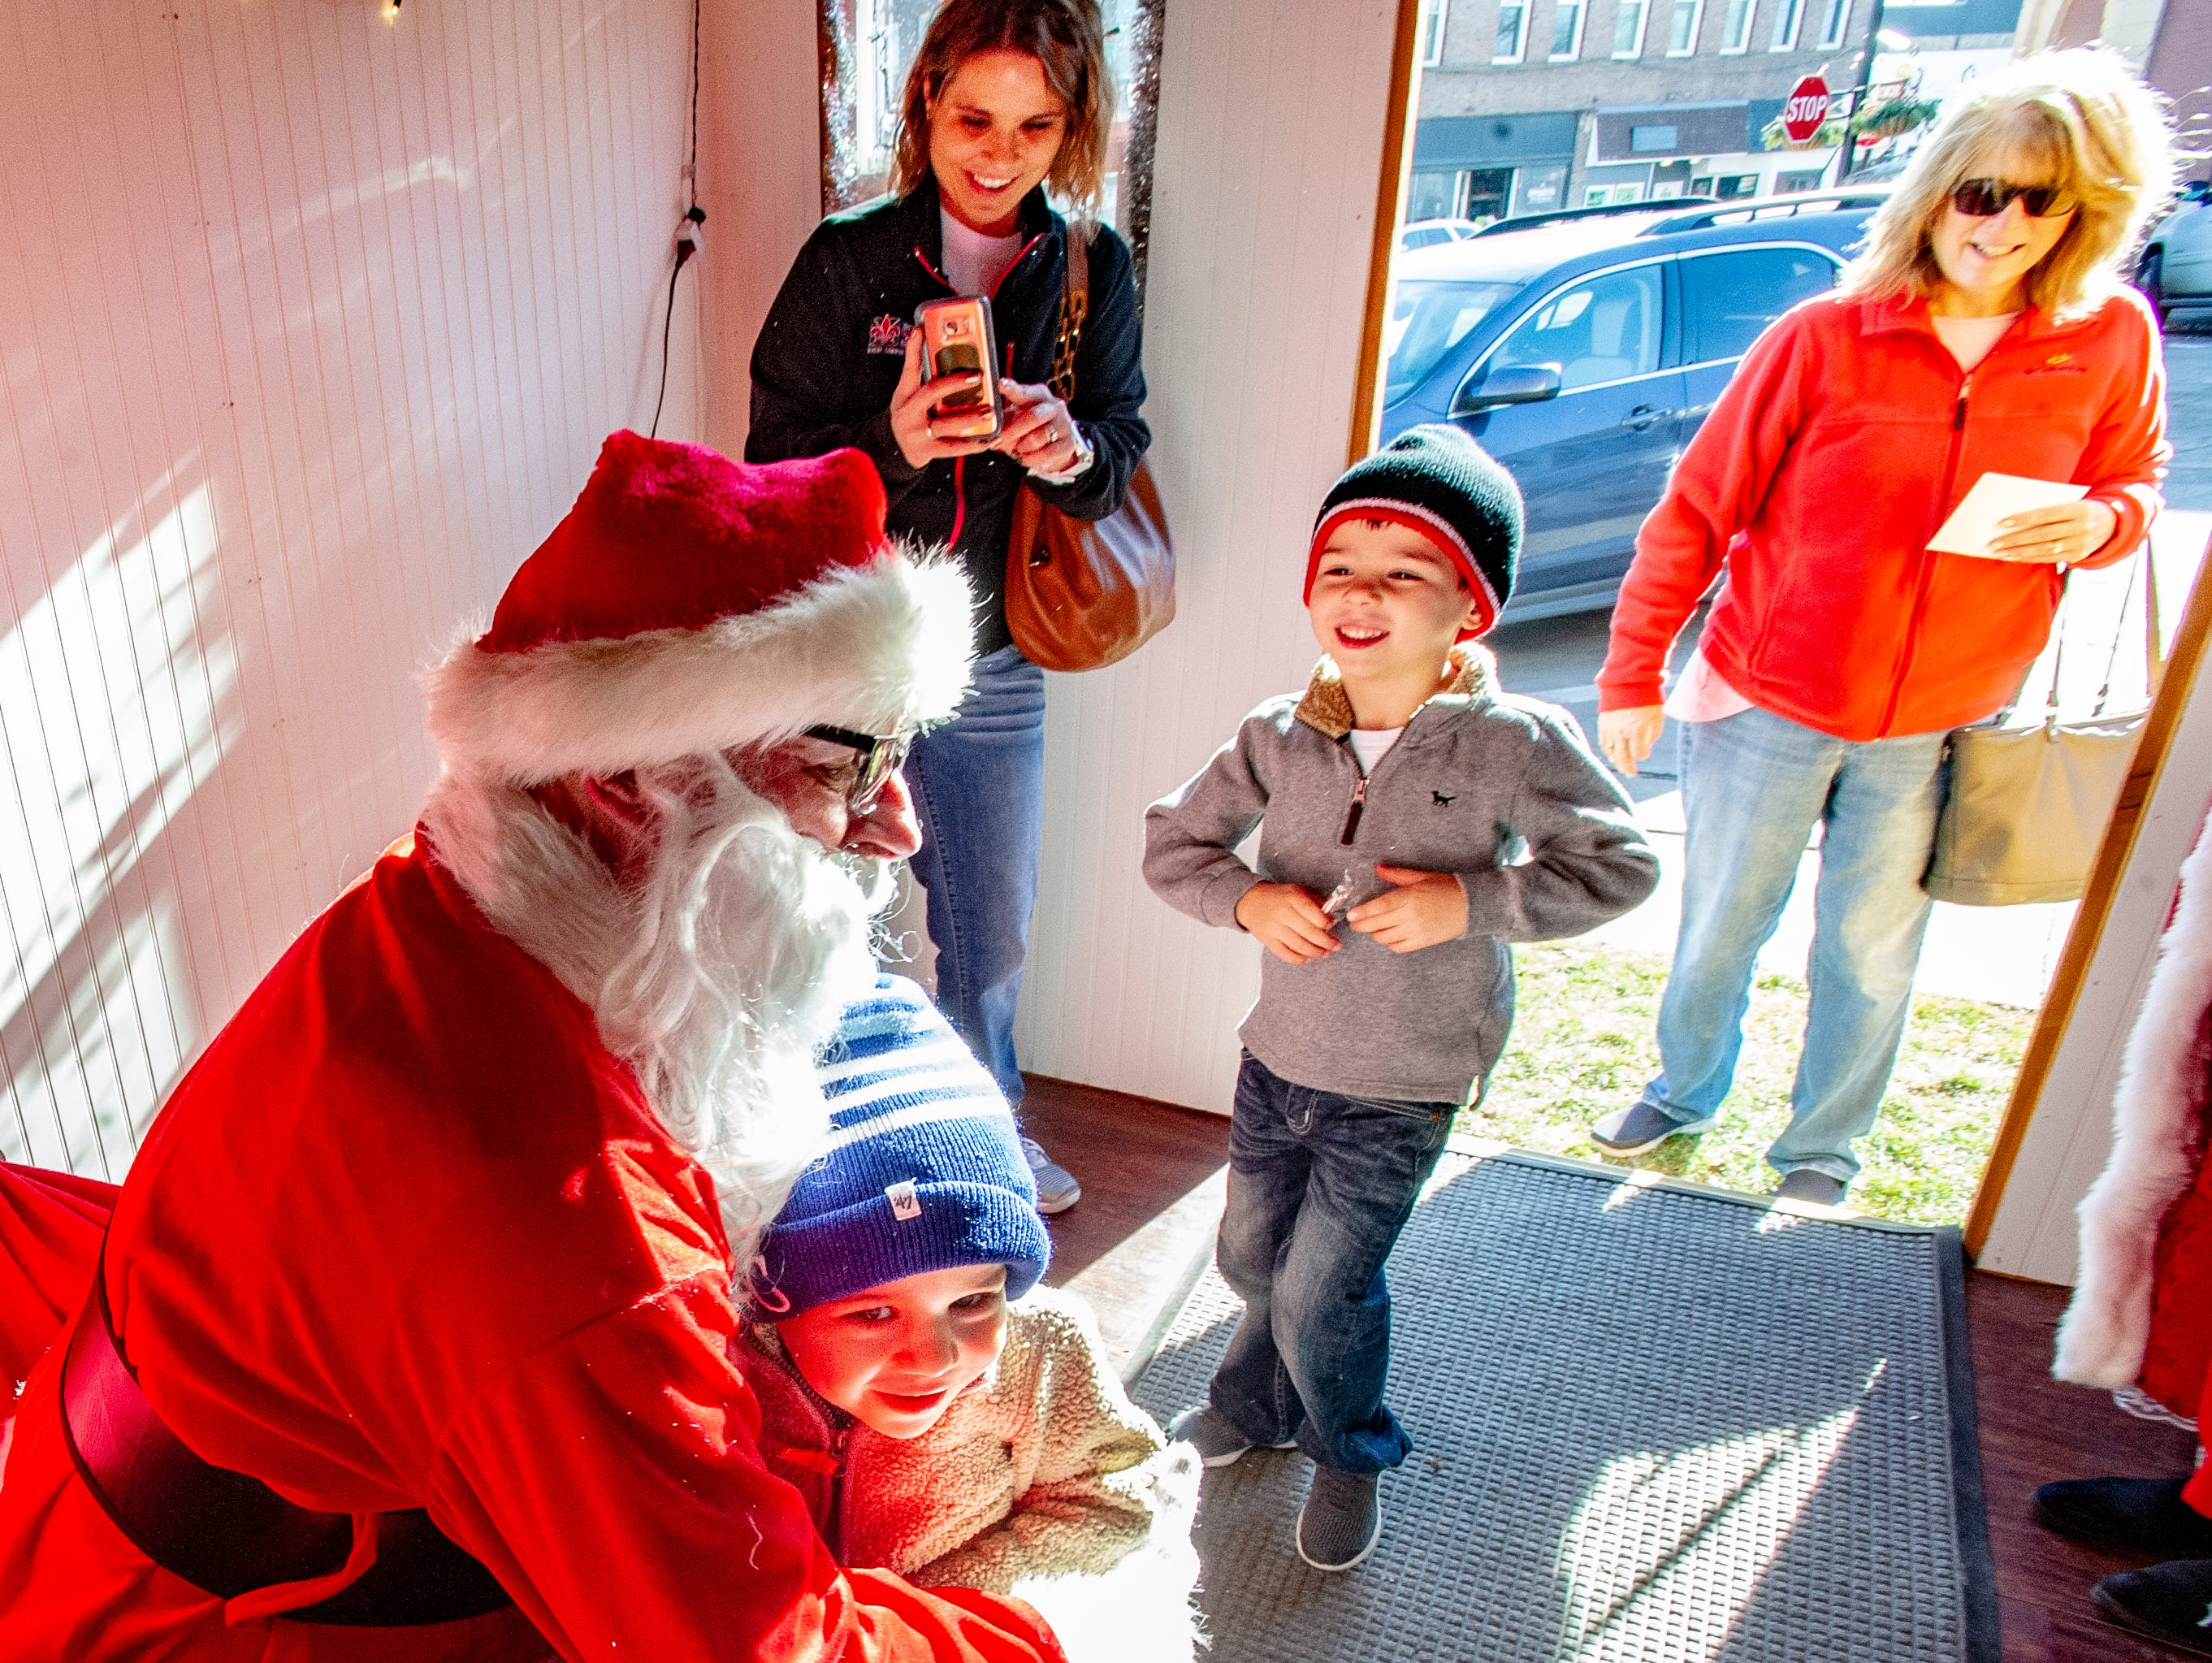 Simon Ripley, 2, gets a hug from Santa after sharing his Christmas wish list. Jordan Ripley, 5, also received a hug while accompanied by their mother, Ashley Ripley and grandmother Julia Page, of Osceola. The group visited with Santa and Mrs. Claus at the Santa House in downtown Indianola Nov. 24, 2018.